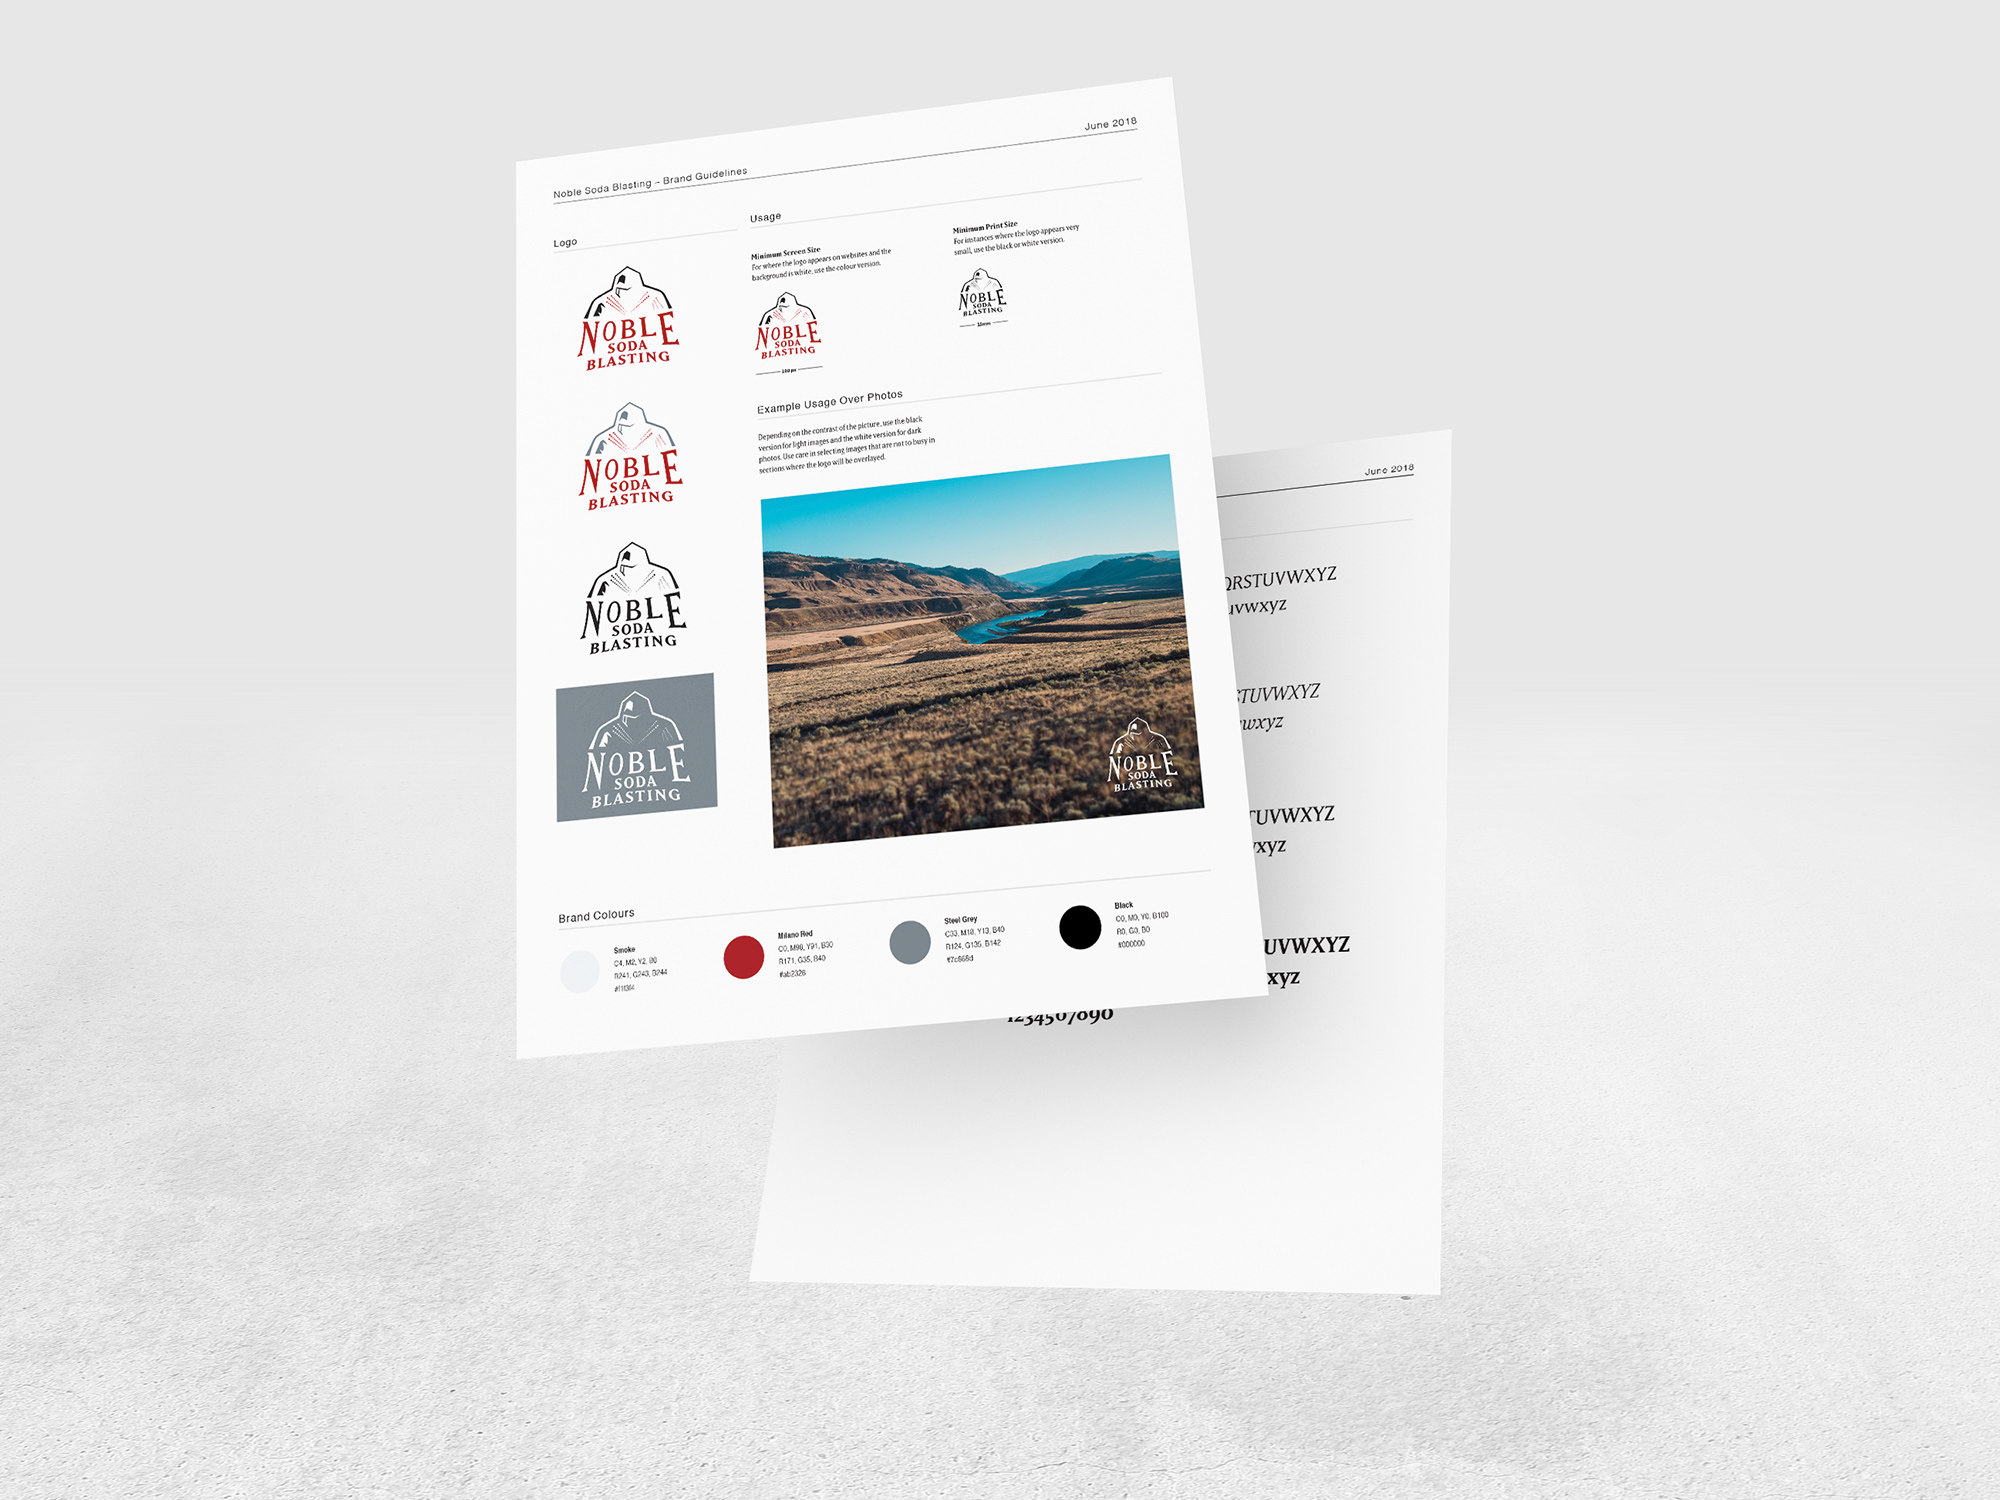 Sample of brand guidelines front and back with logo versions, colour pallet, and fonts.